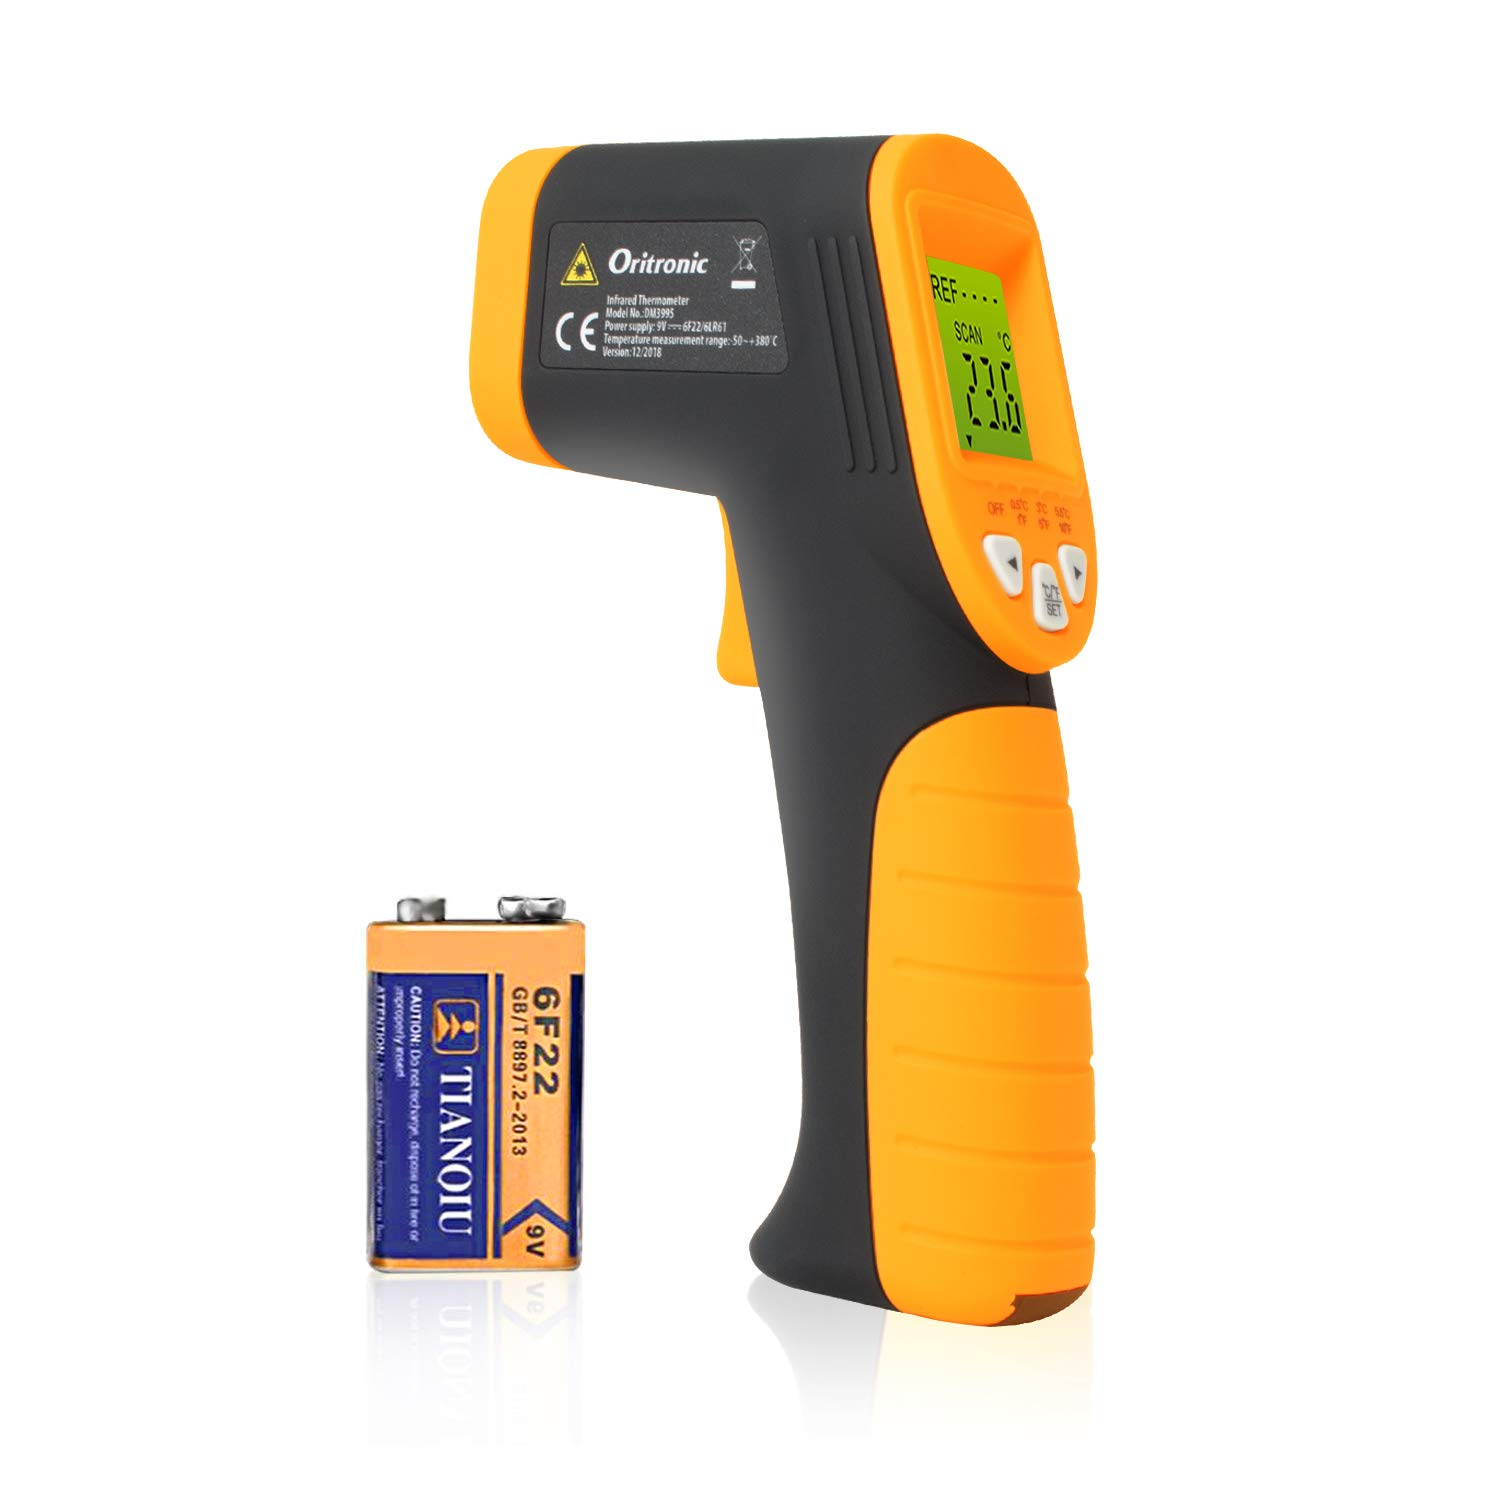 Temperature Gun,Non-Contact Digital Laser Infrared Thermometer Instant Read Thermometer(-58°F to 716°F)